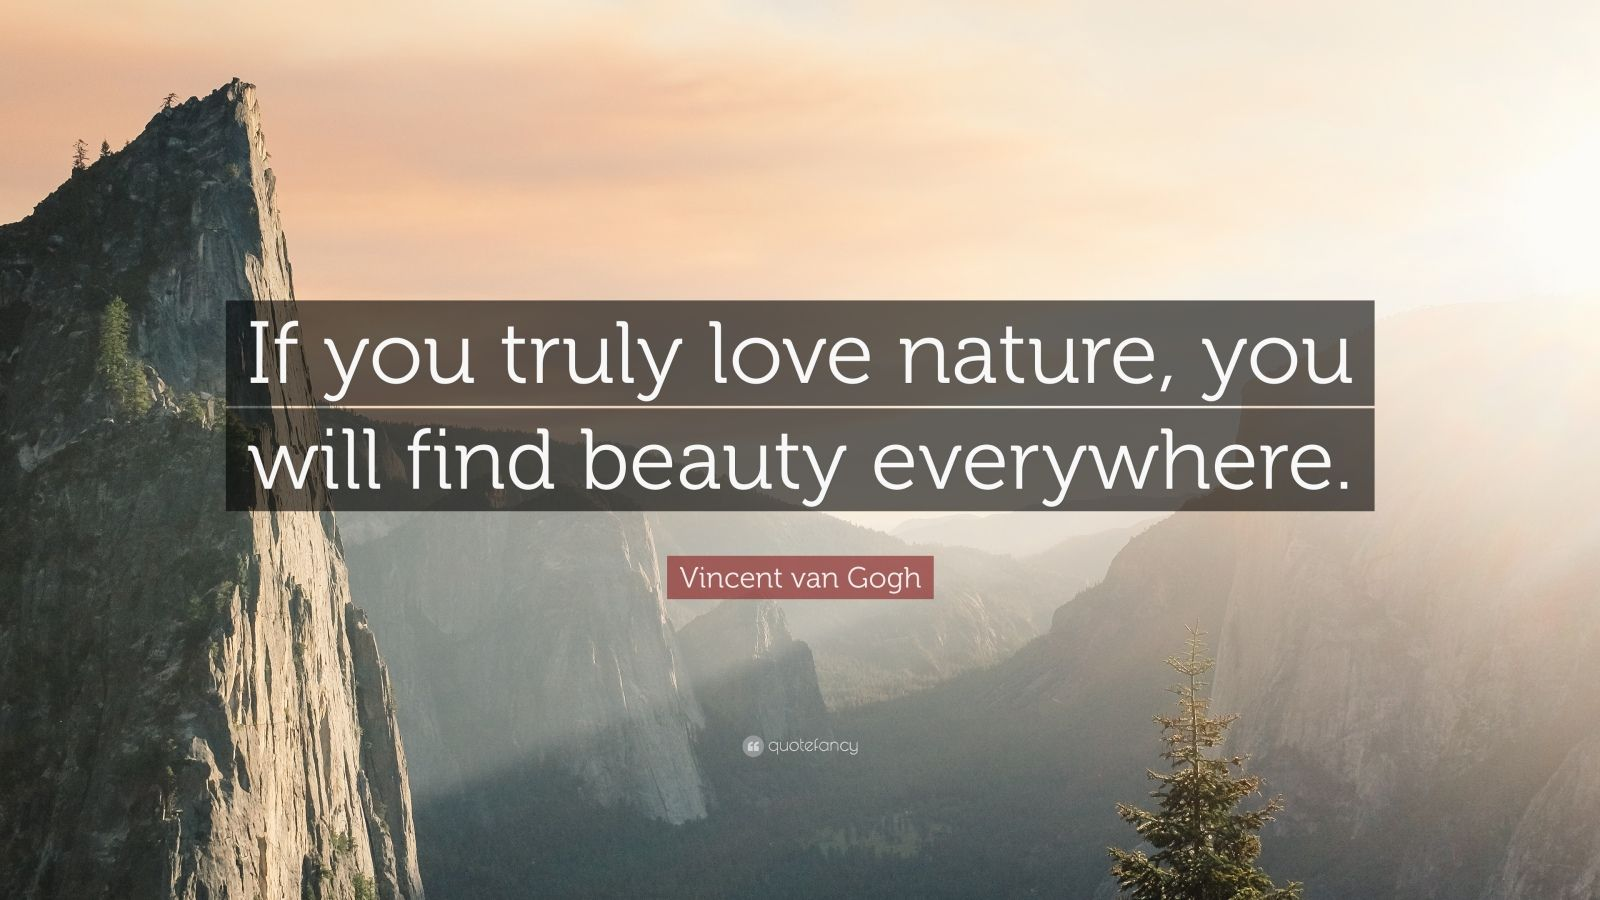 John Muir Quotes Wallpaper Vincent Van Gogh Quote If You Truly Love Nature You